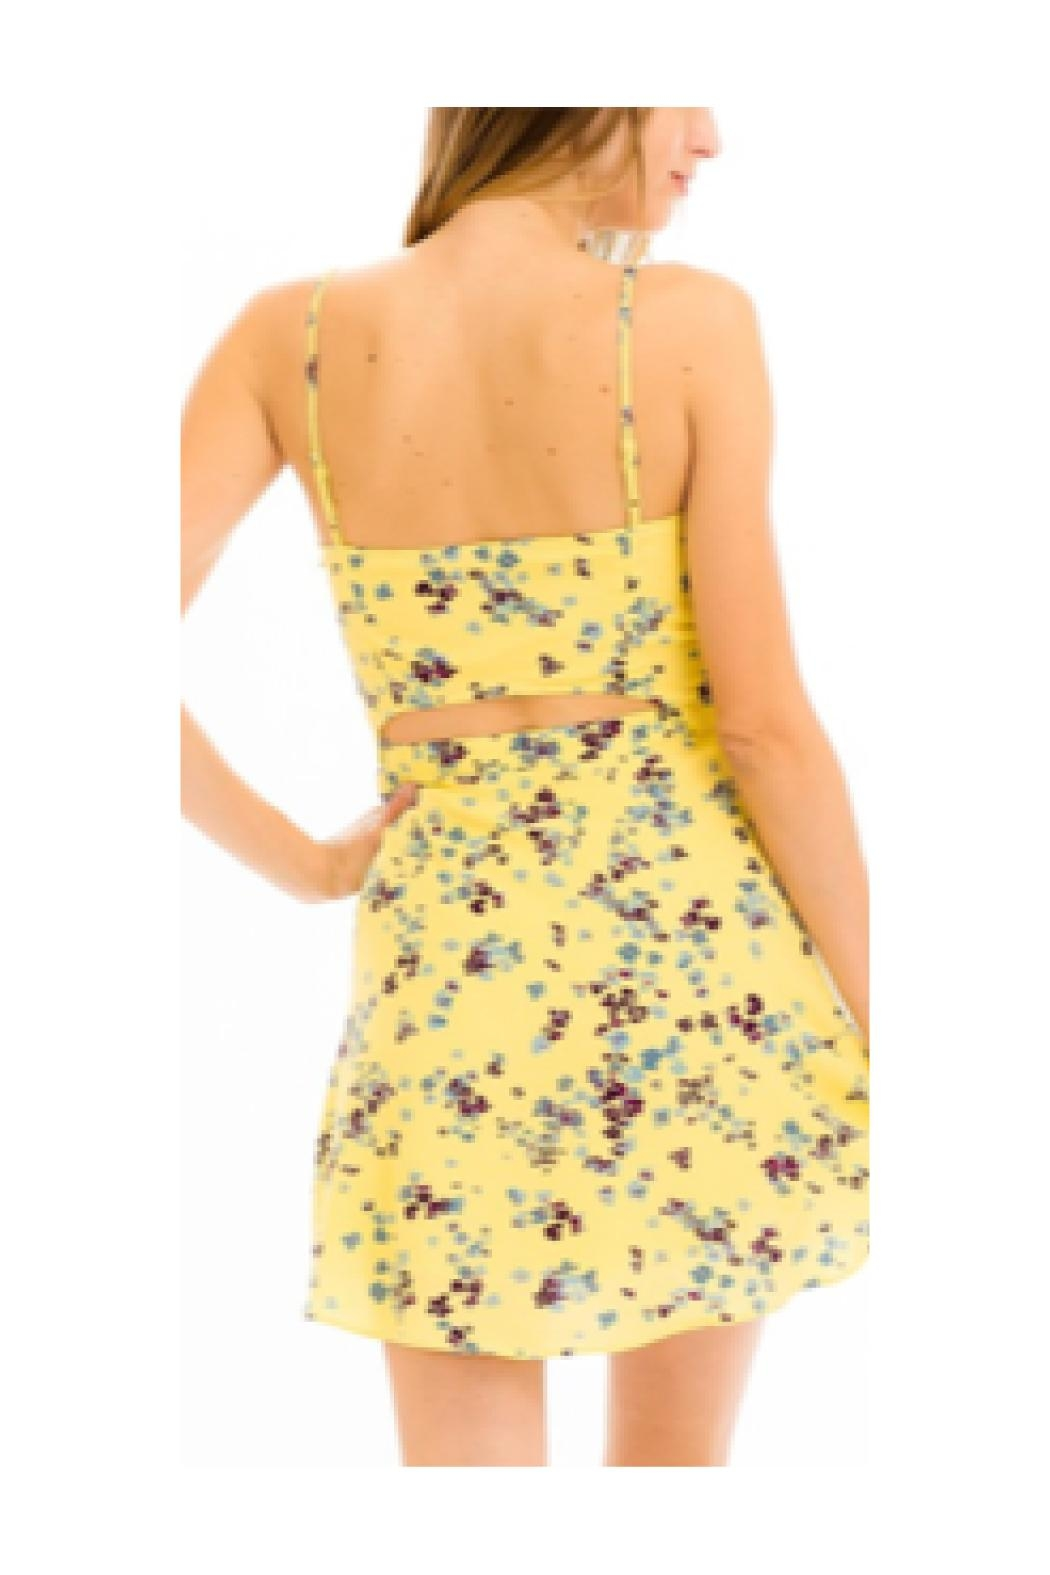 Polly & Esther Yellow Floral Dress - Front Full Image